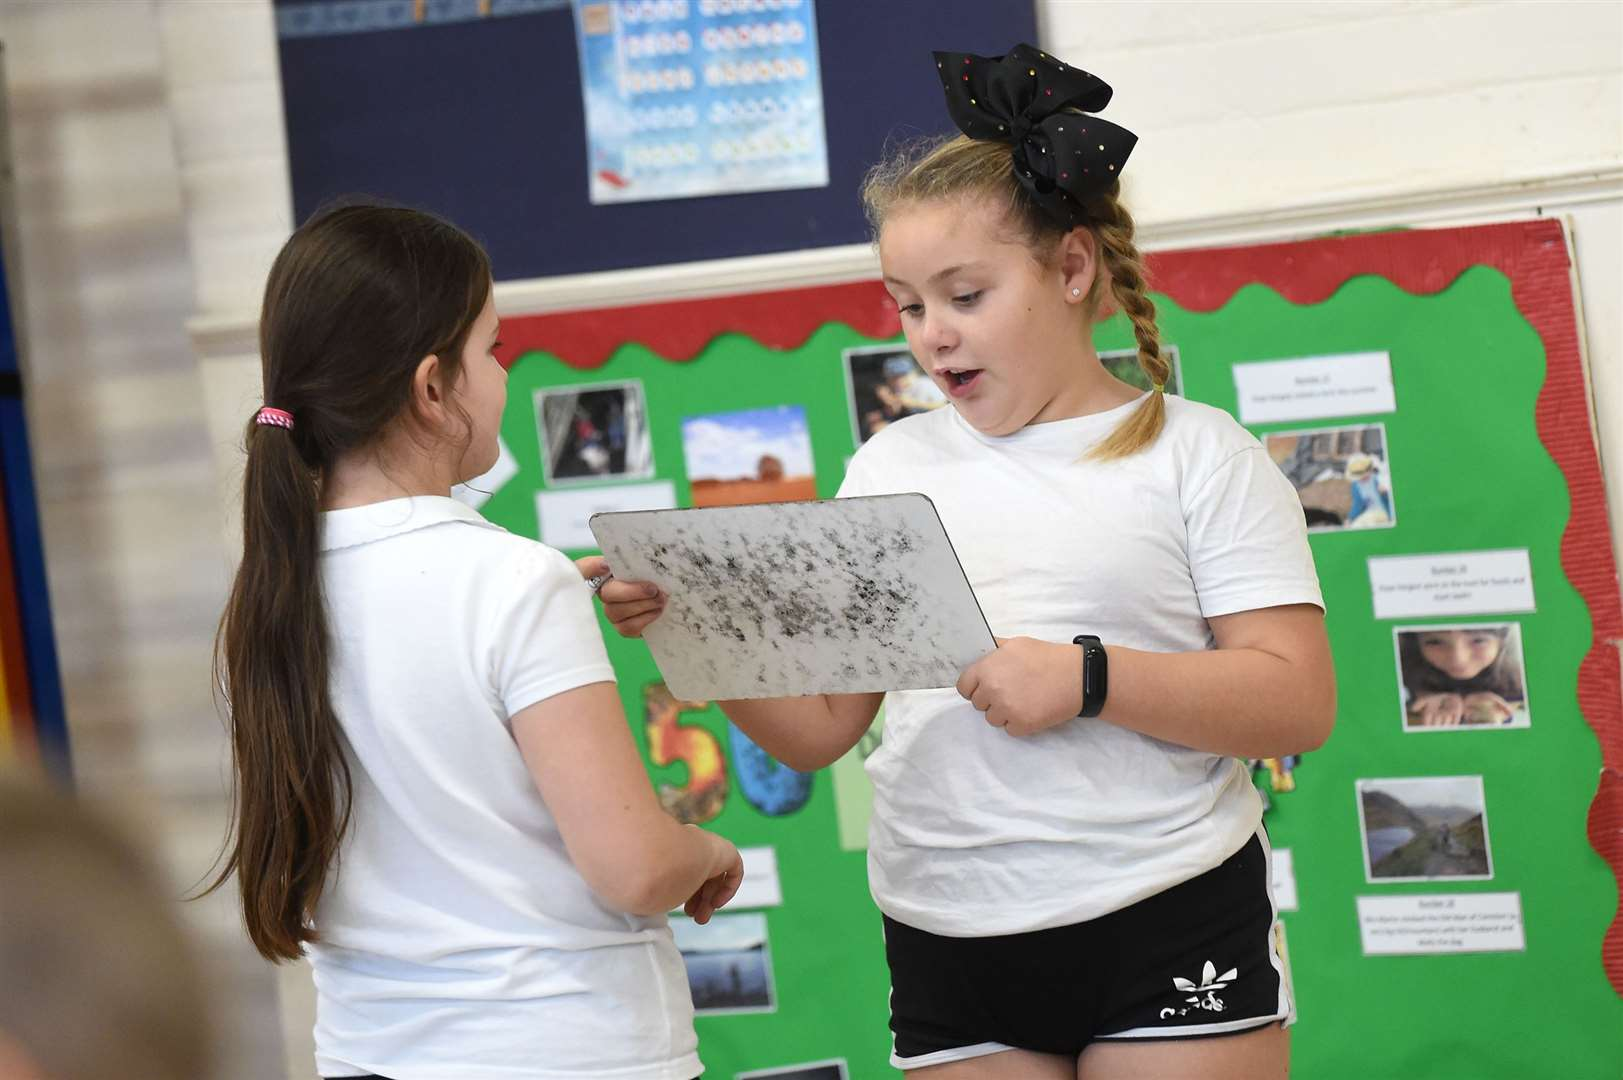 Glemsford Primary Academy staged a sports themed event to encourage youngsters to keep fit...PICTURE: Mecha Morton .... (22635386)